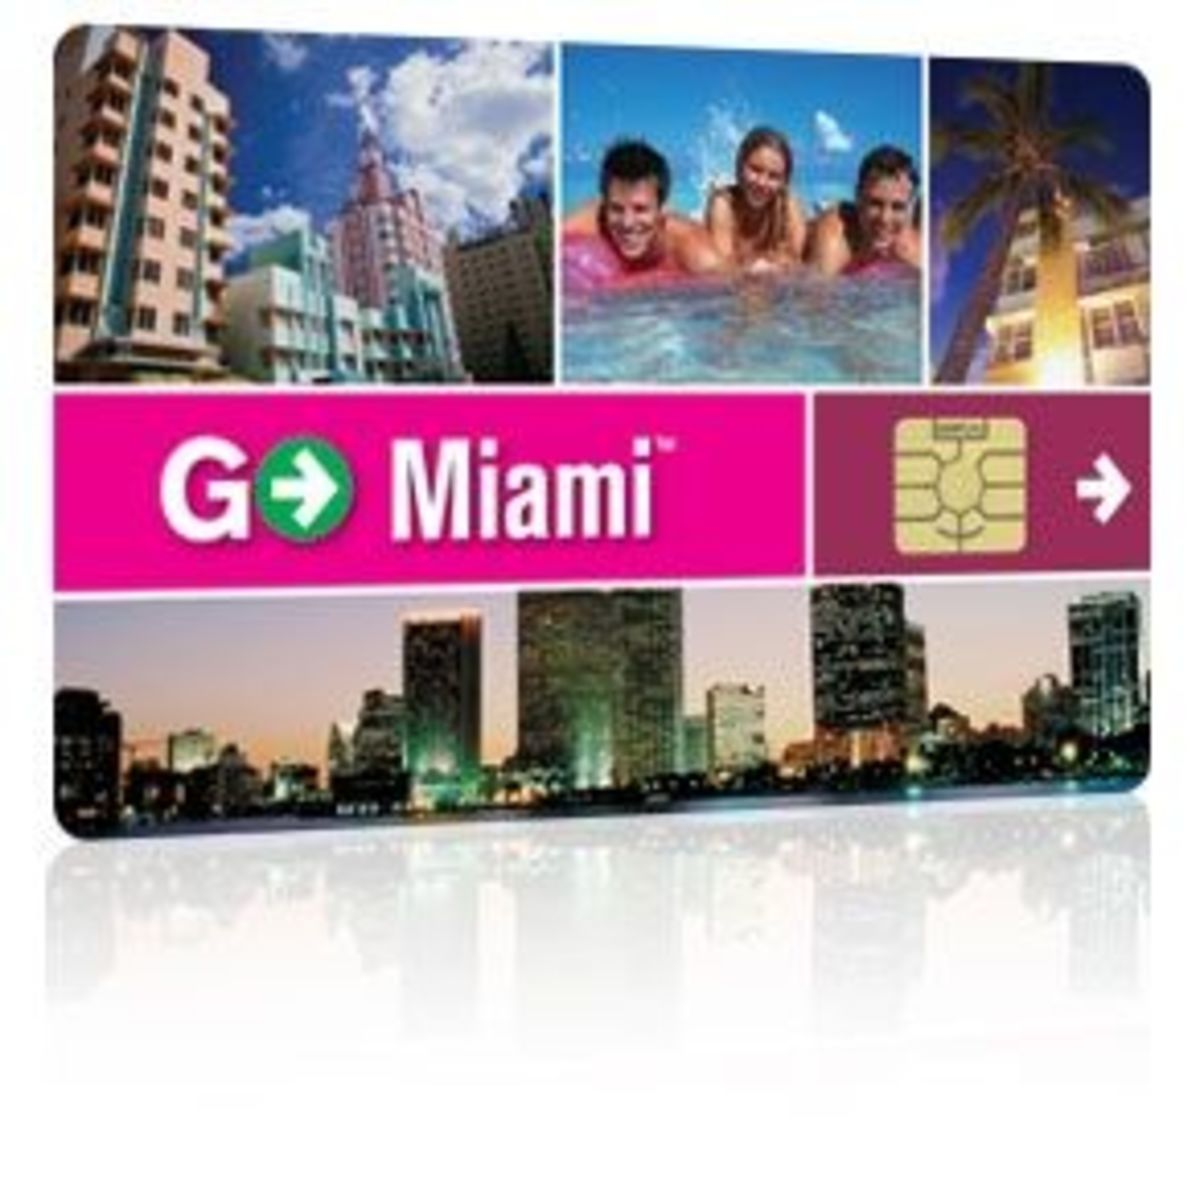 A Go Miami Card from Smart Destinations is an attraction pass that gets you into multiple attractions and tours for one low price. It provides admission to 35 Miami attractions and so much more. Image courtesy of smartdestinations.